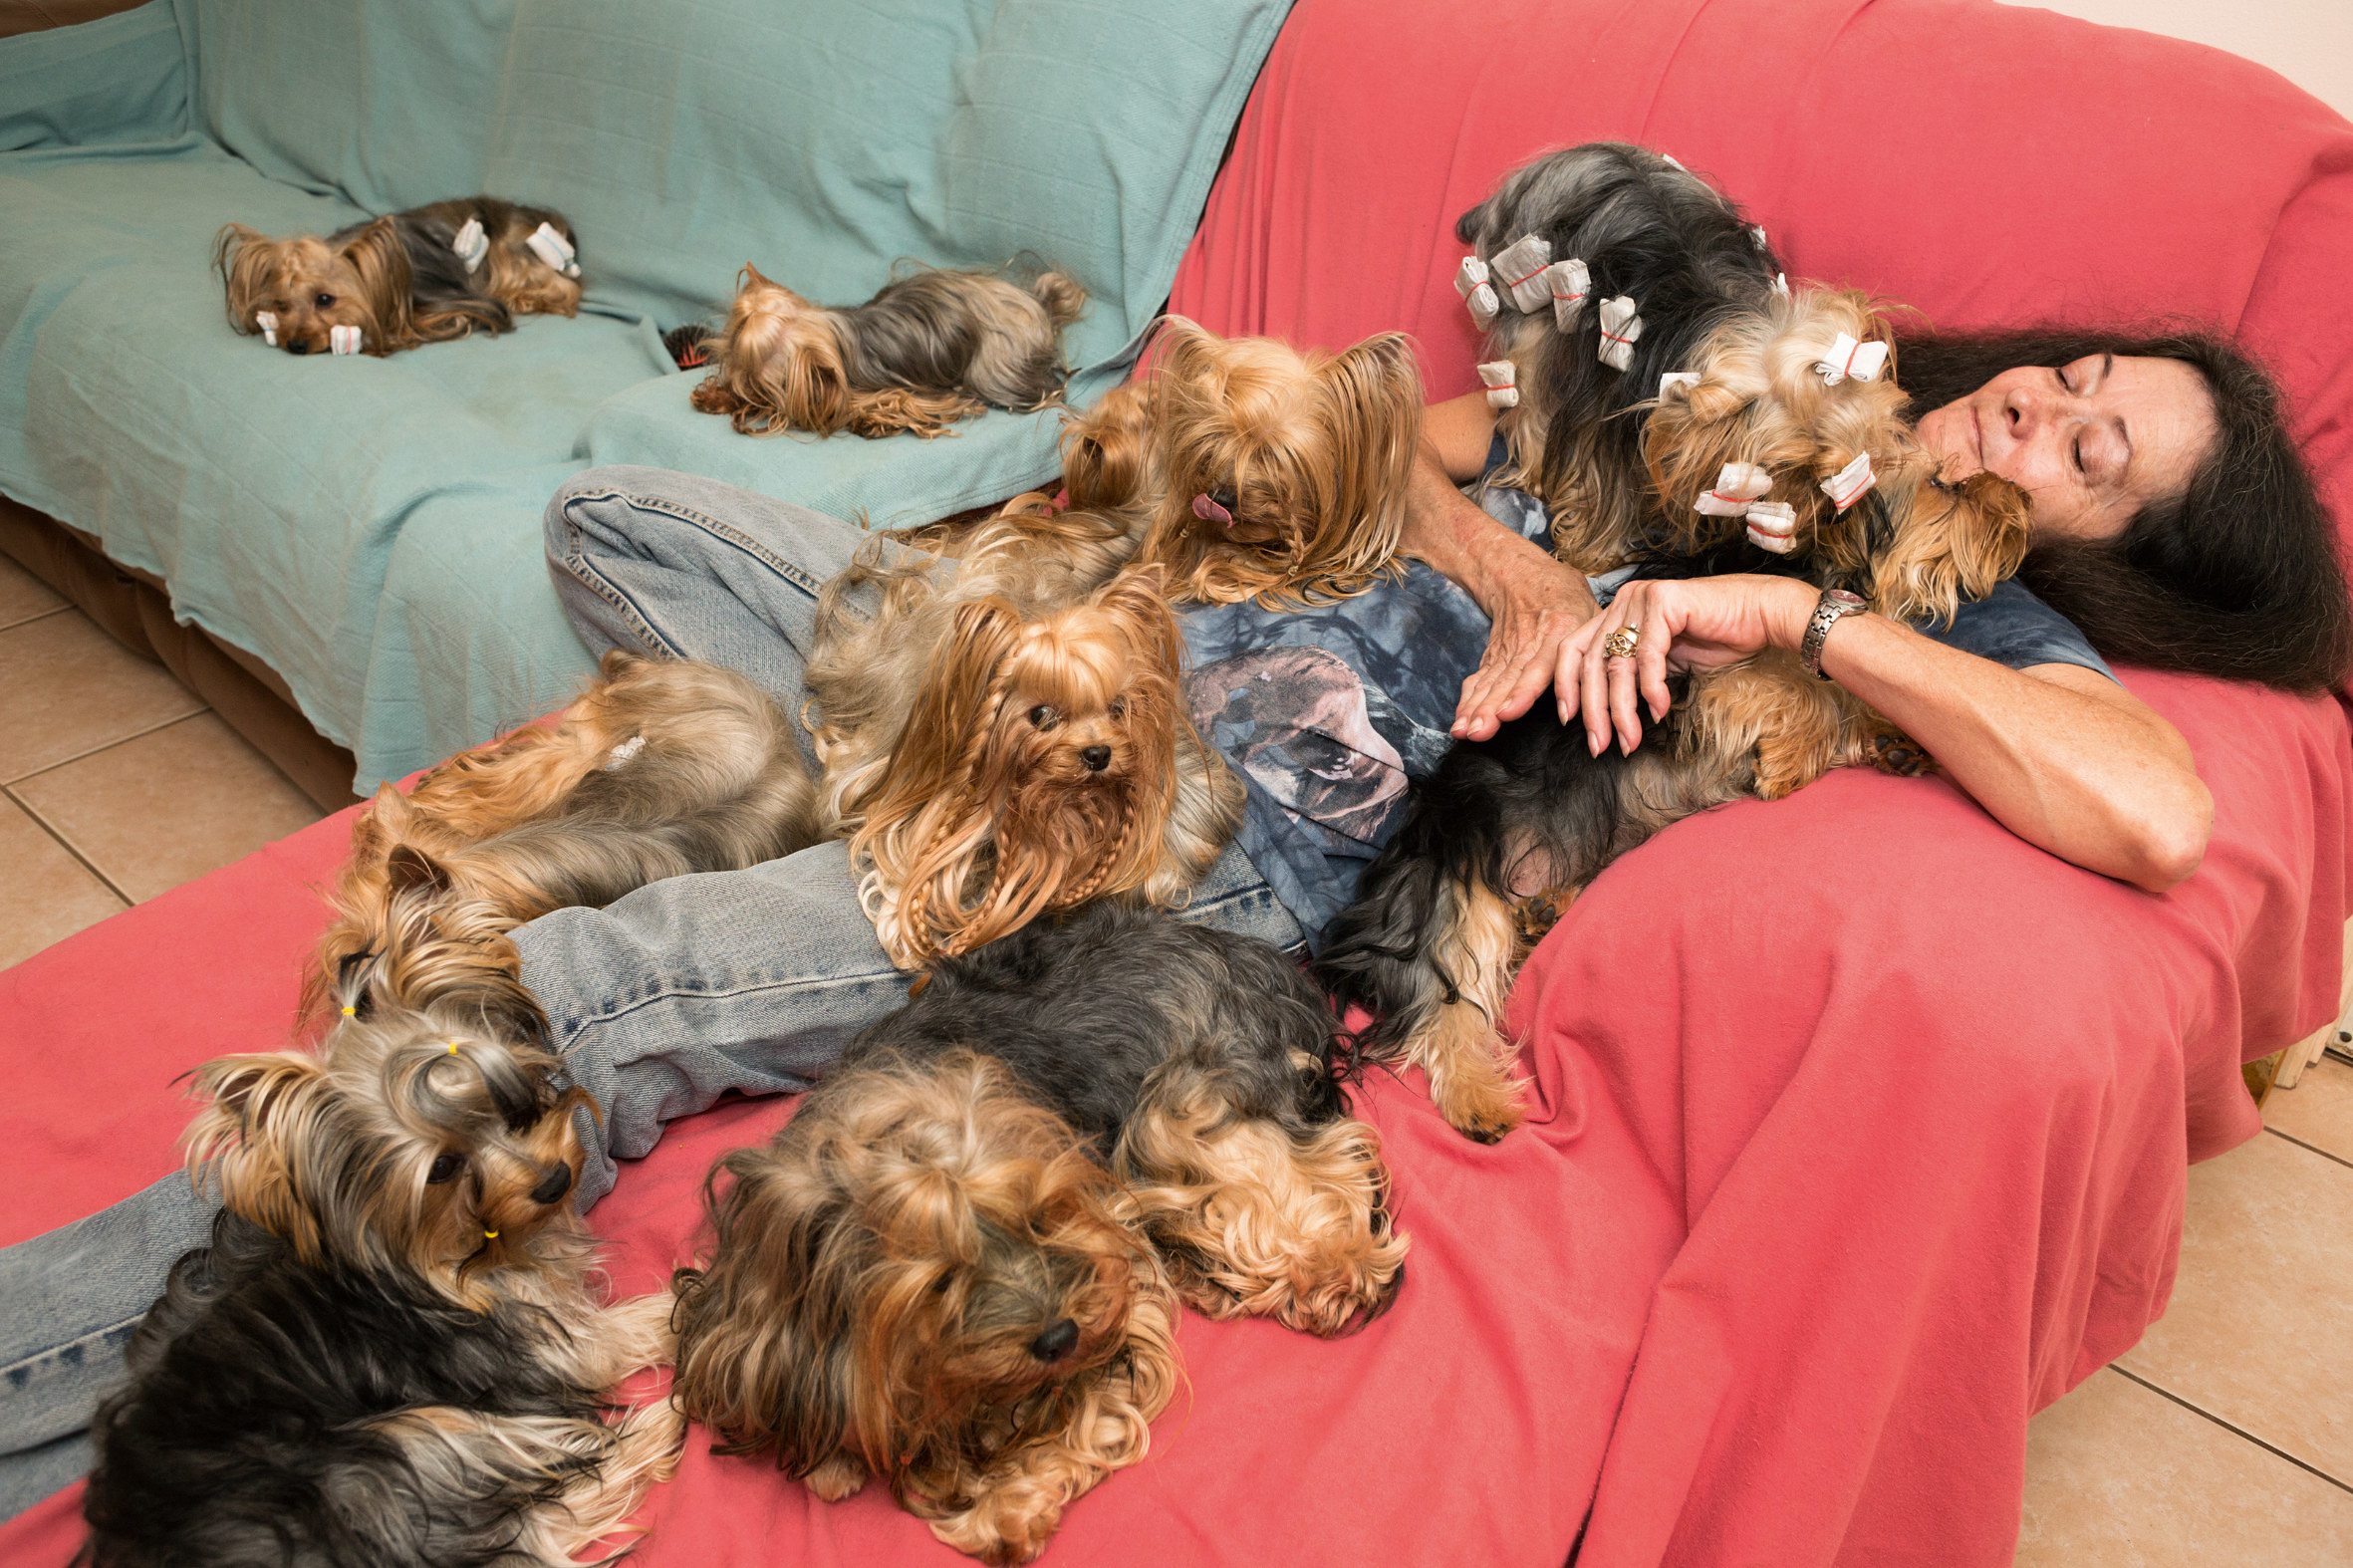 at least 11 Yorkshire terriers cuddle in a heap with a woman on a couch